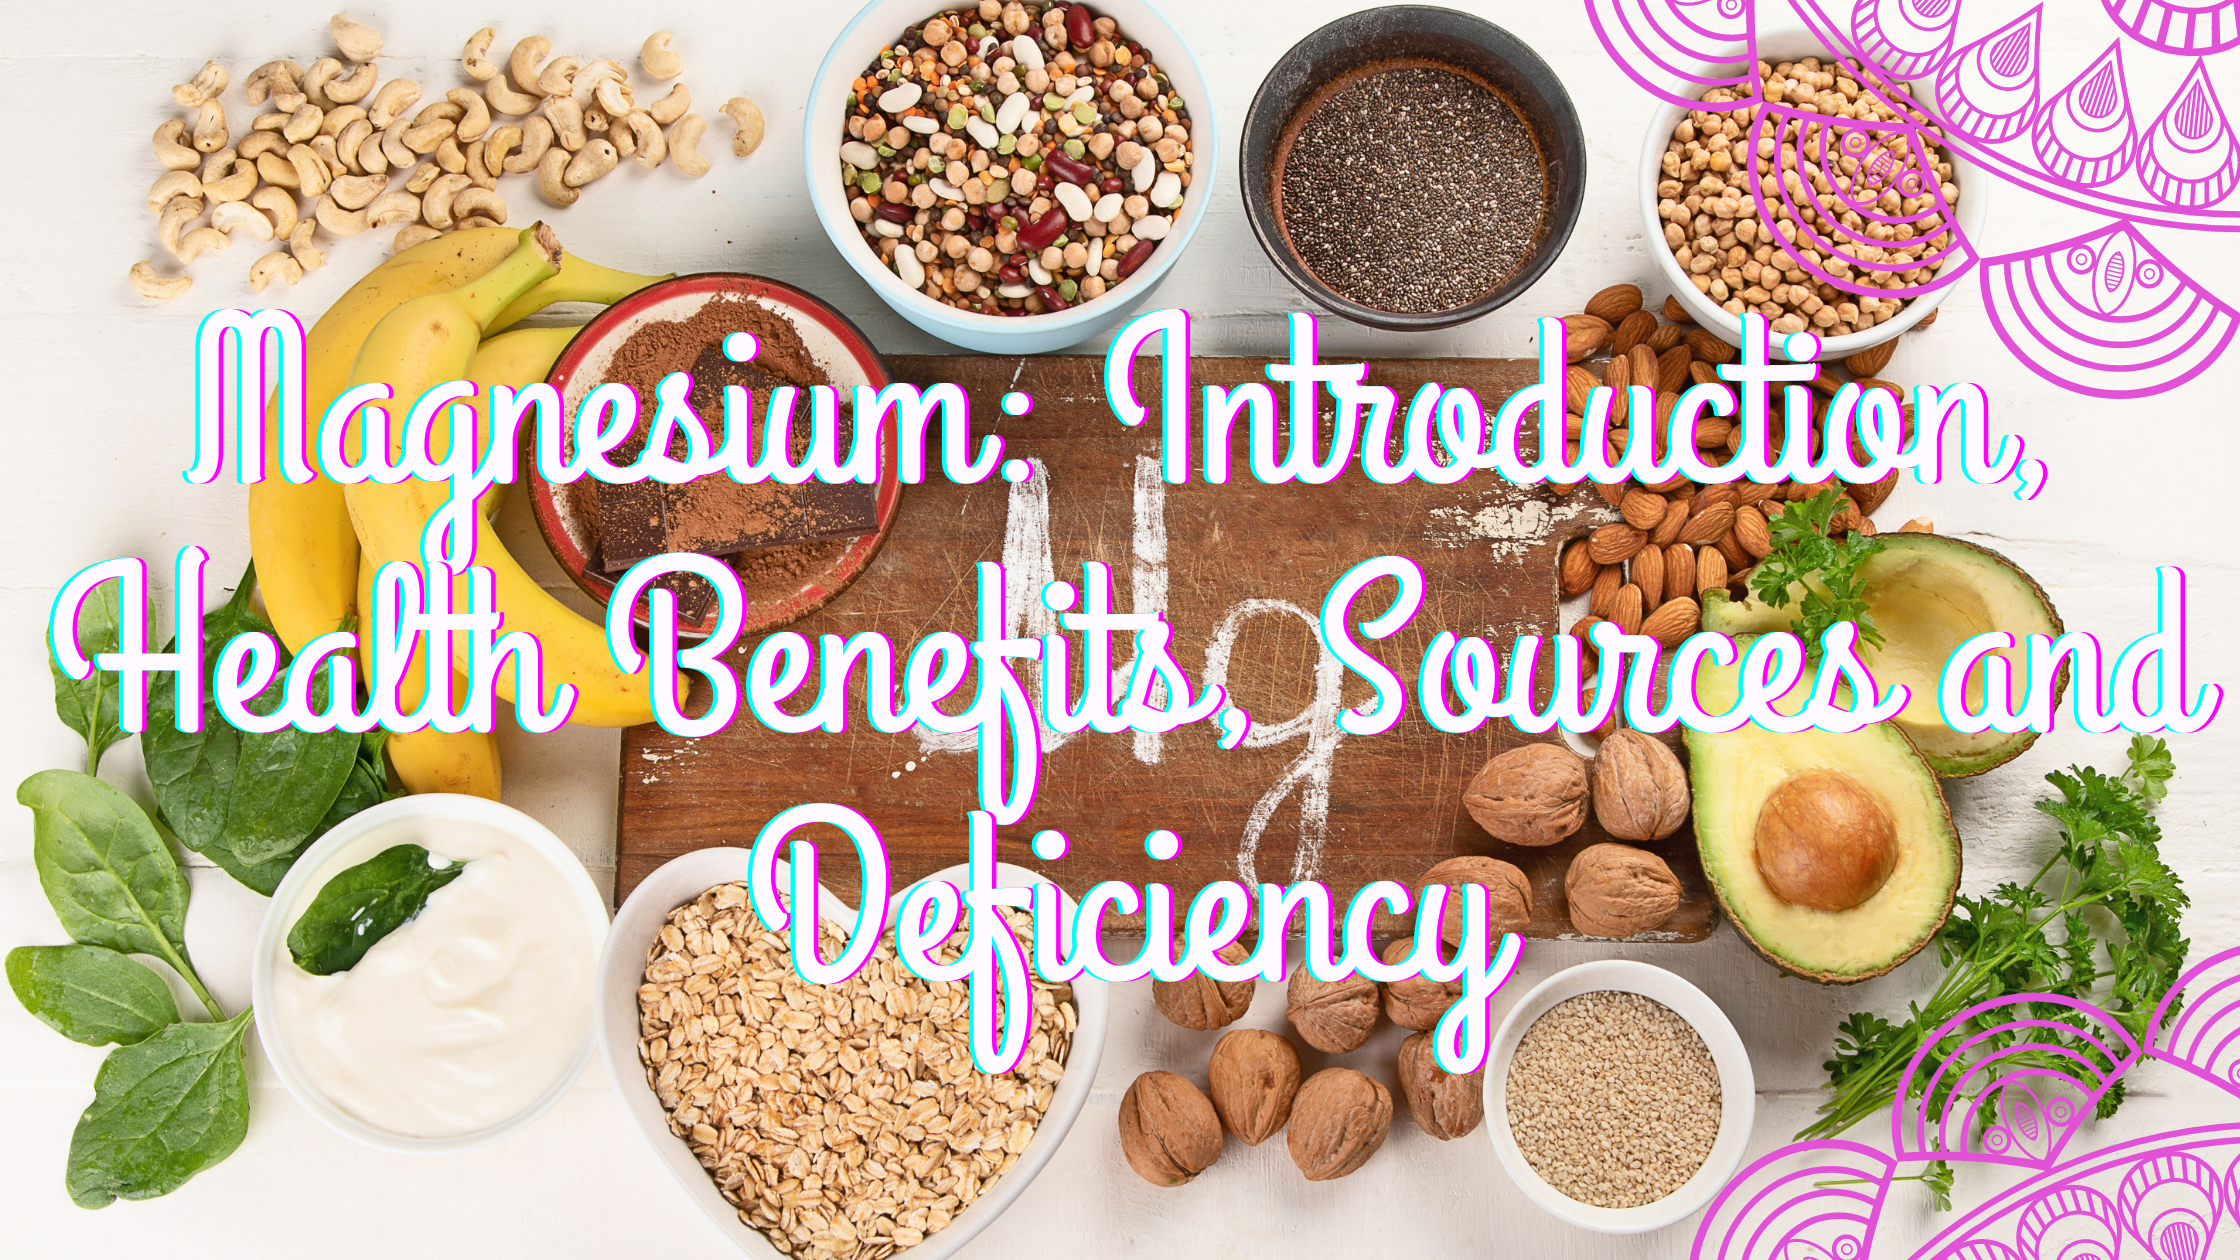 Magnesium: Introduction, Health Benefits, Sources and Deficiency